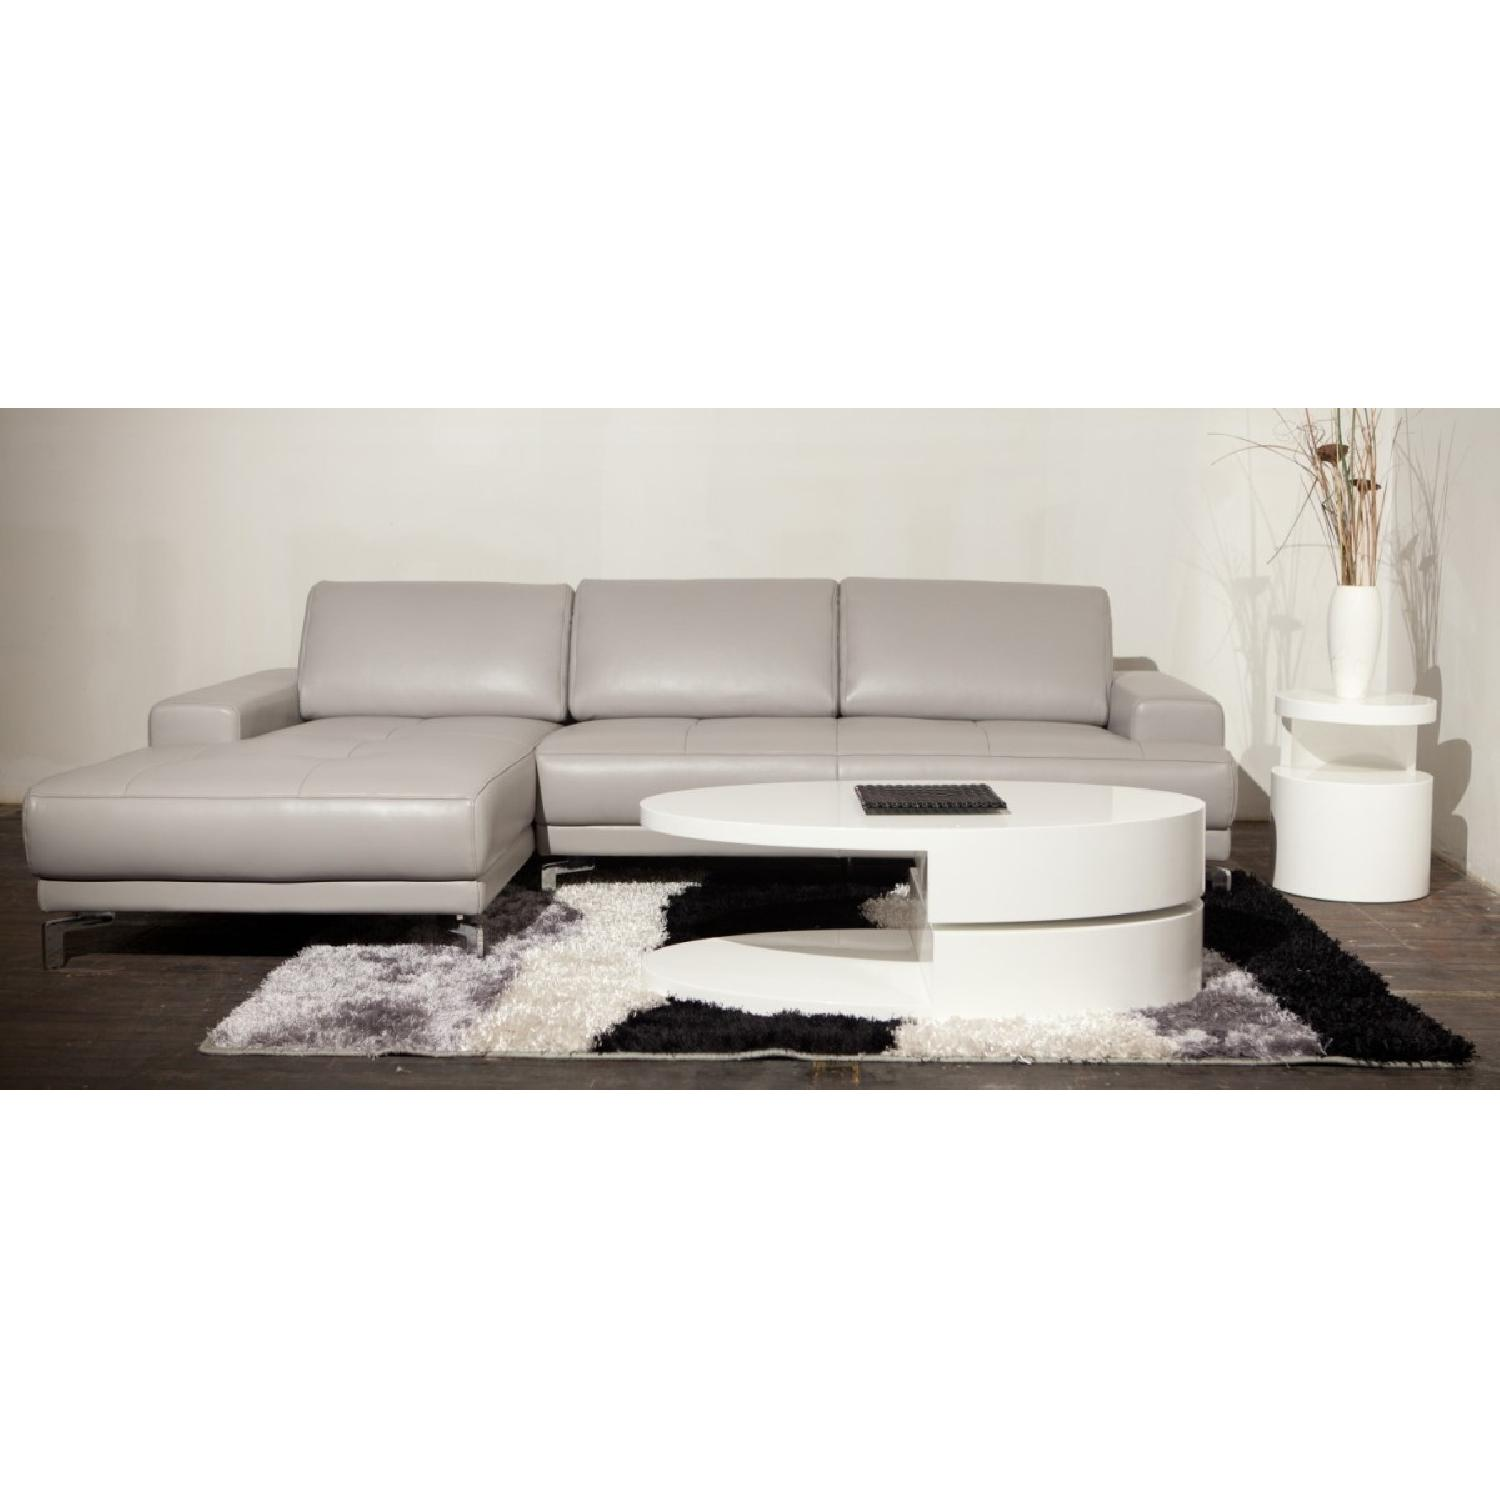 Modern High Gloss White Coffee Table w/ Swivel Oval Top & Sc-2